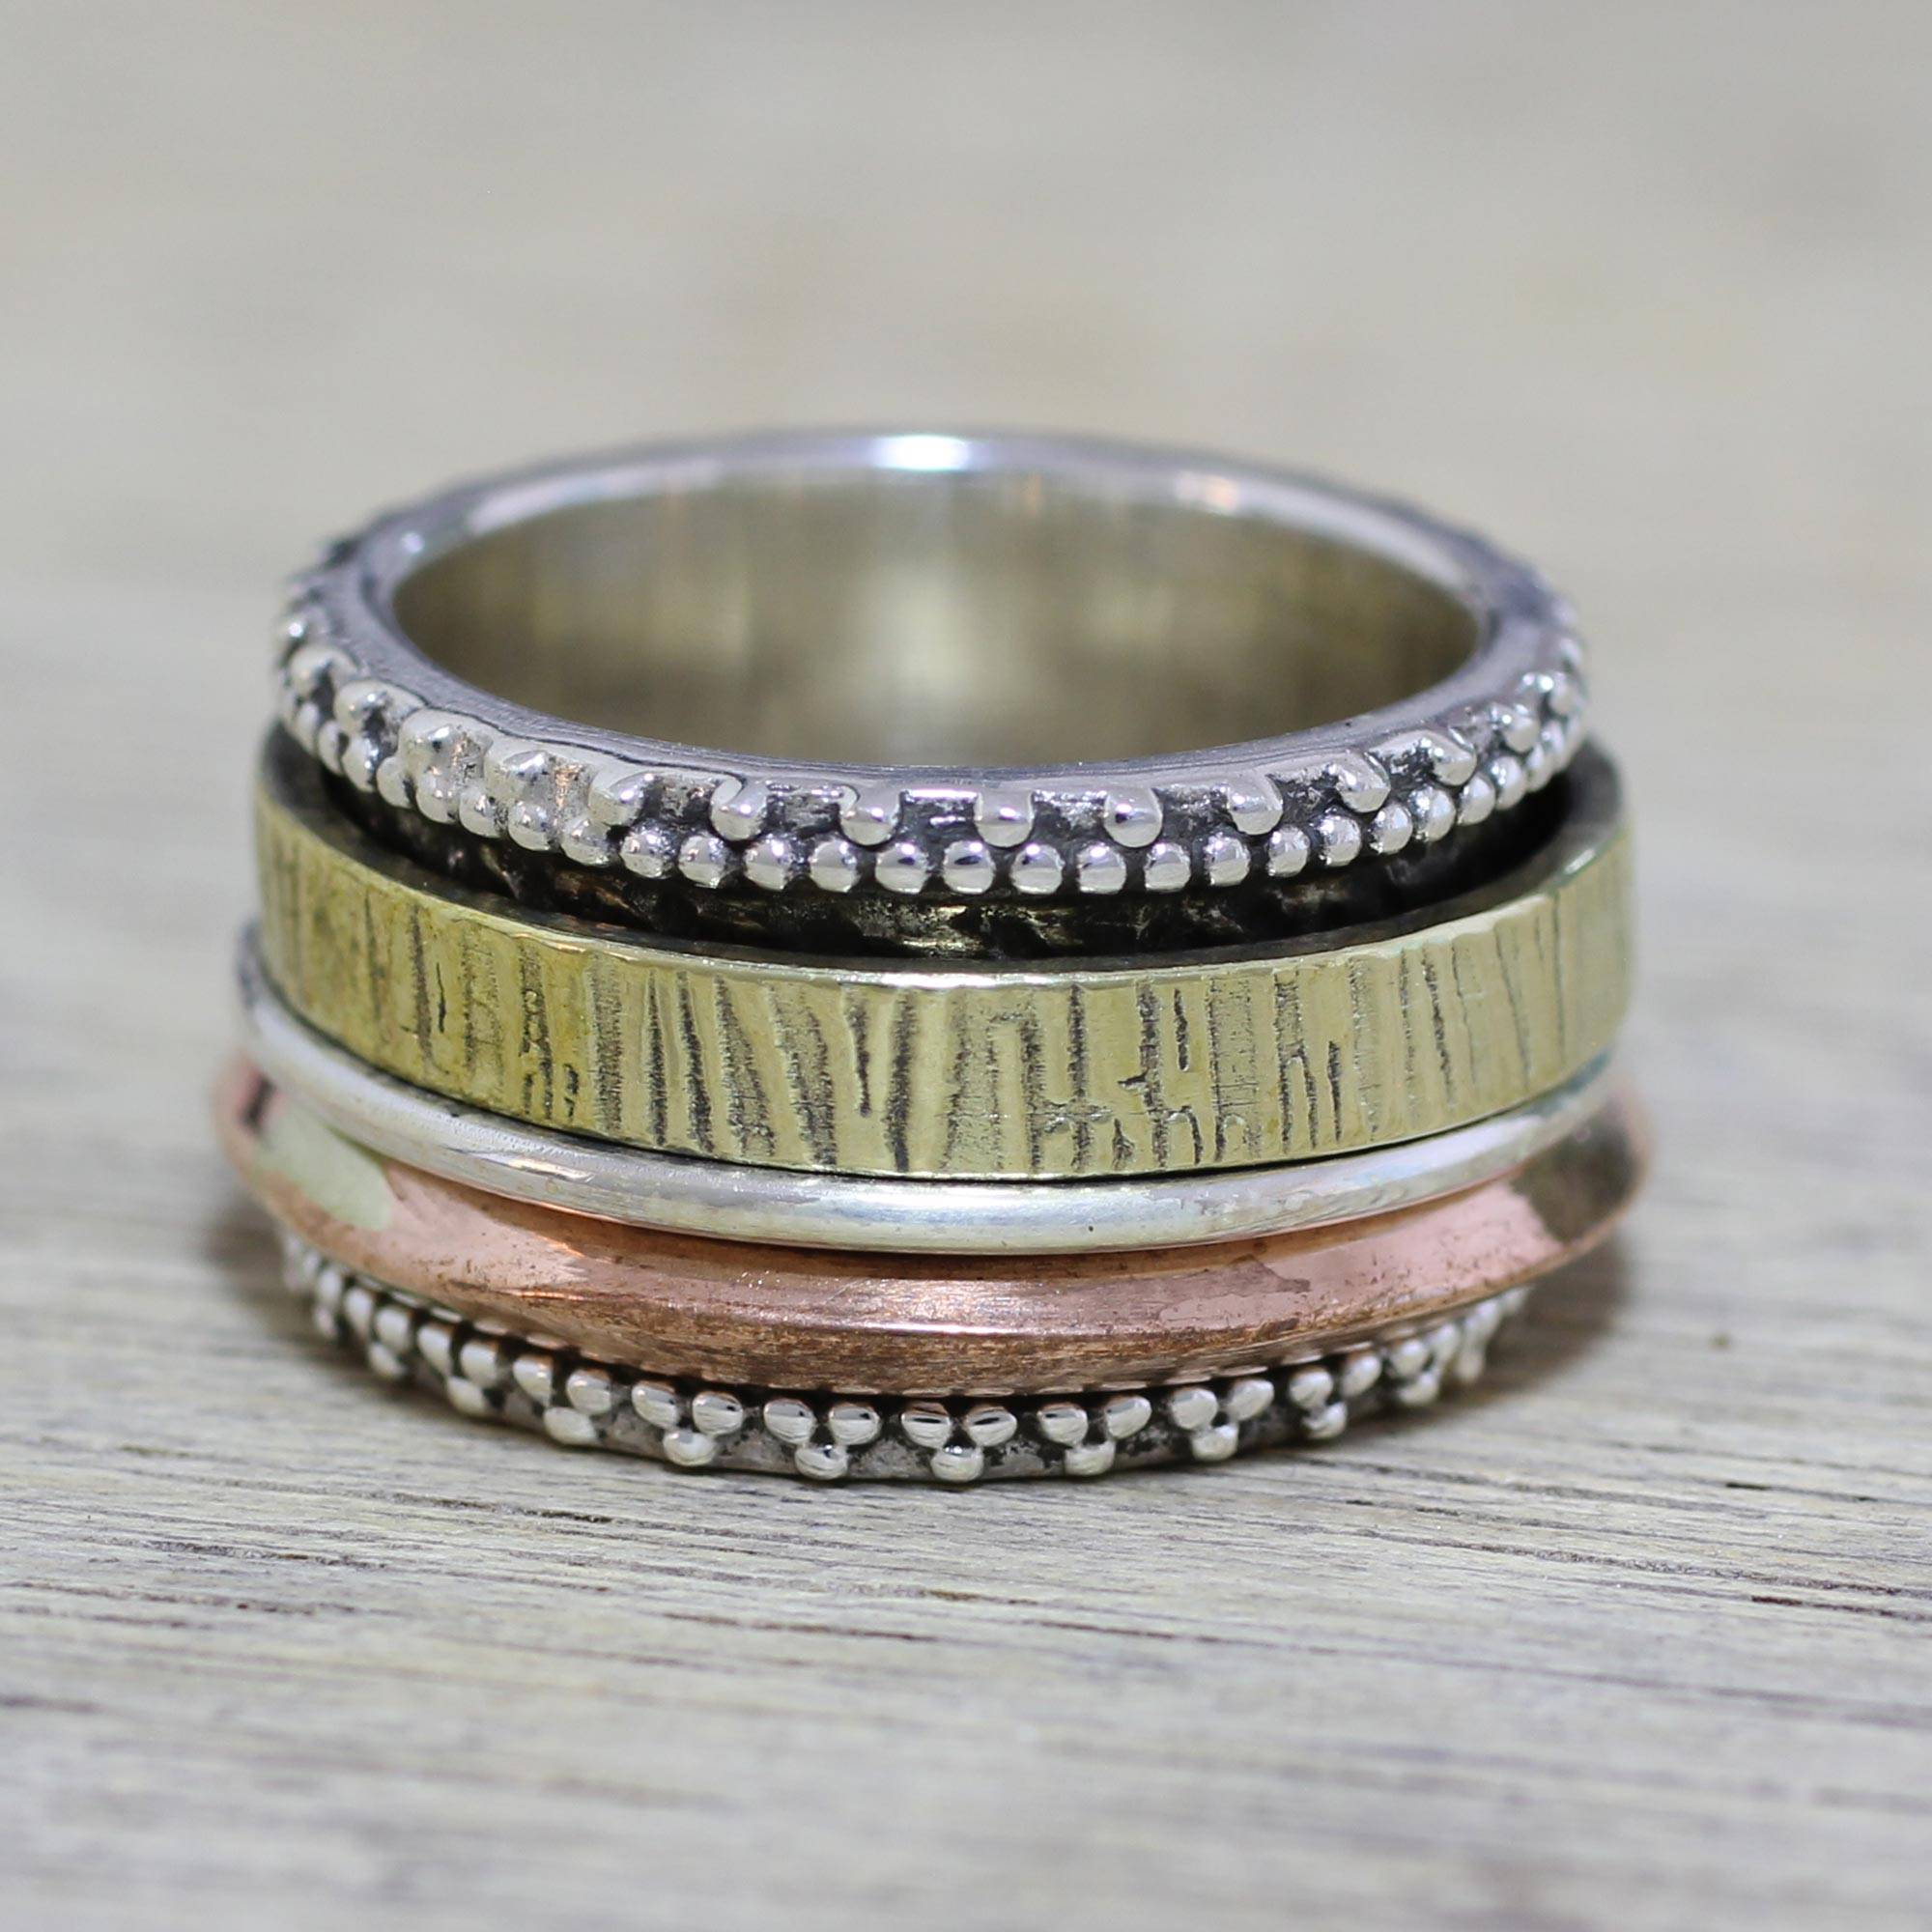 Details about  /Copper Turquoise Solid 925 Sterling Silver Spinner Meditation Ring Jewelry 03